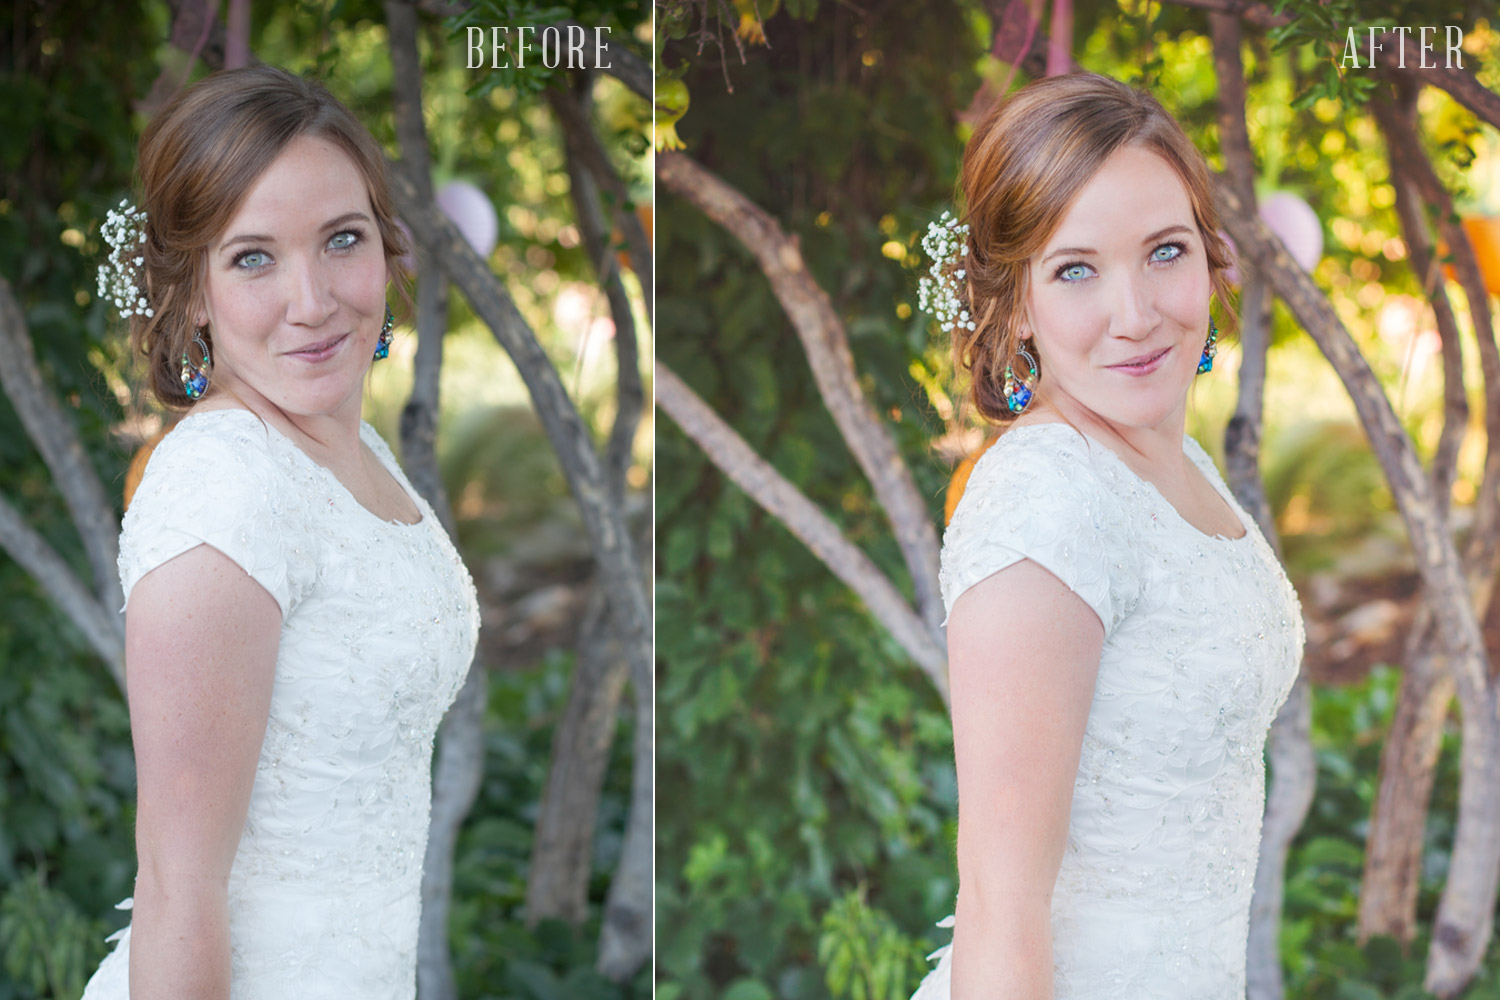 Before & after editing in Lightroom and Photoshop.